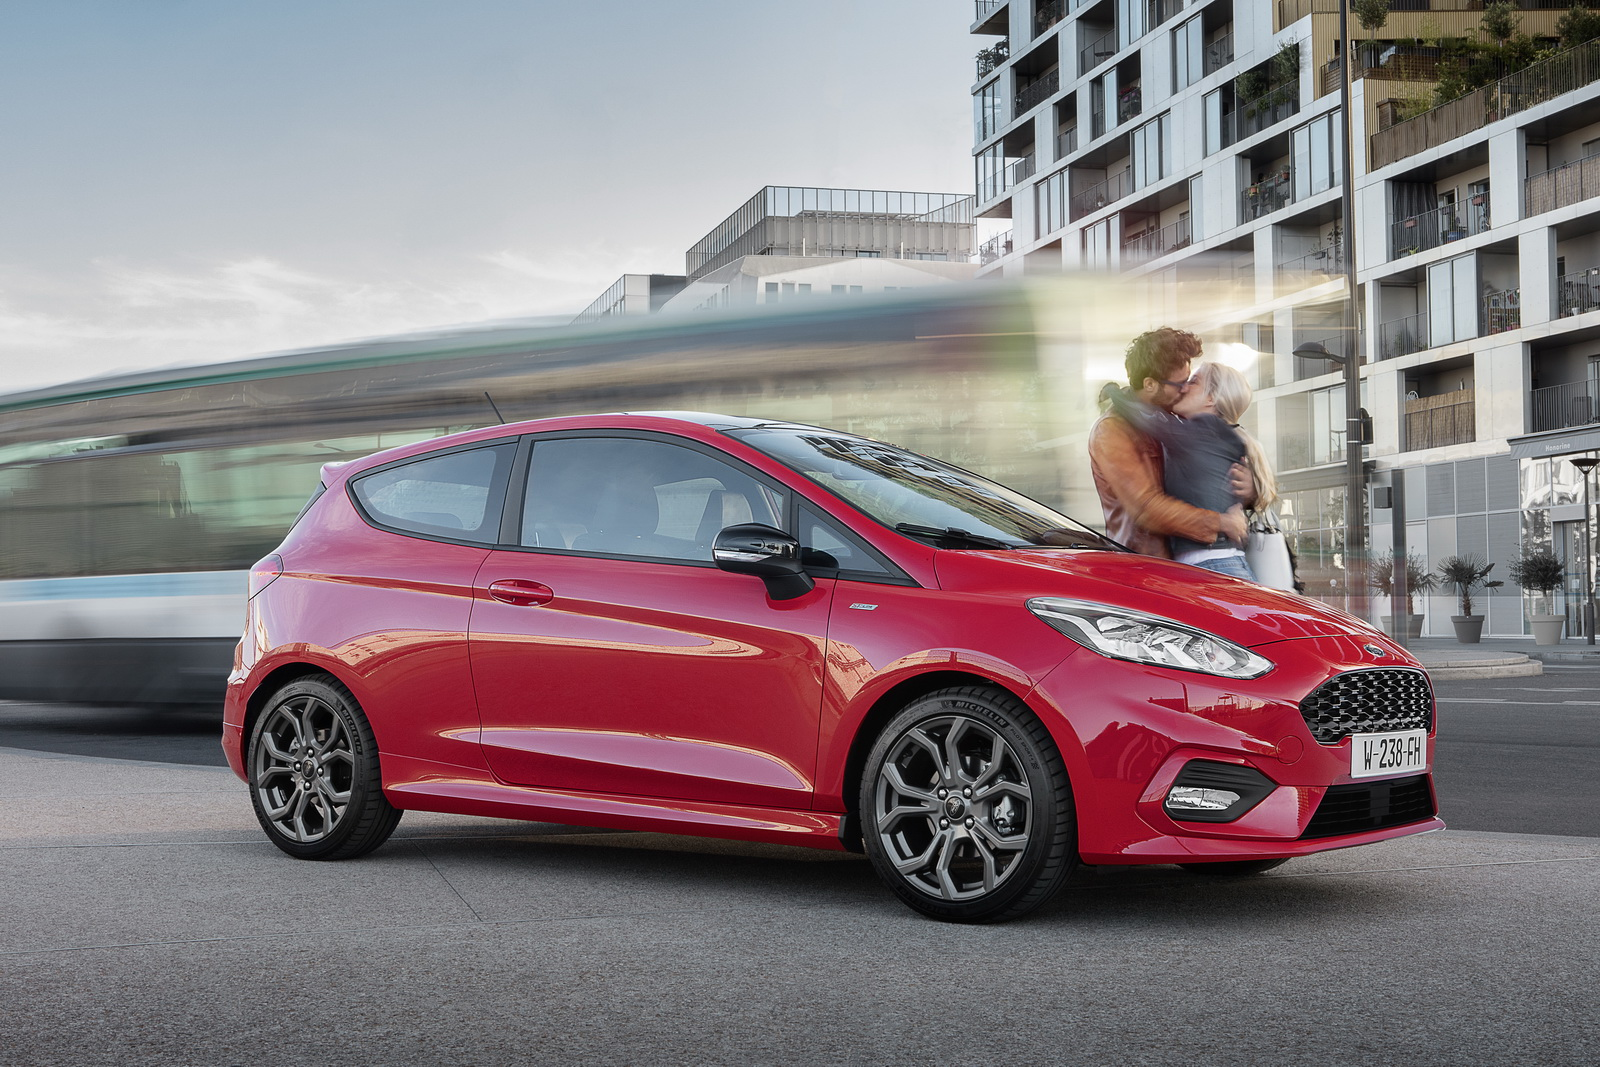 new ford fiesta arrives in europe with a few tricks up its sleeve carscoops. Black Bedroom Furniture Sets. Home Design Ideas